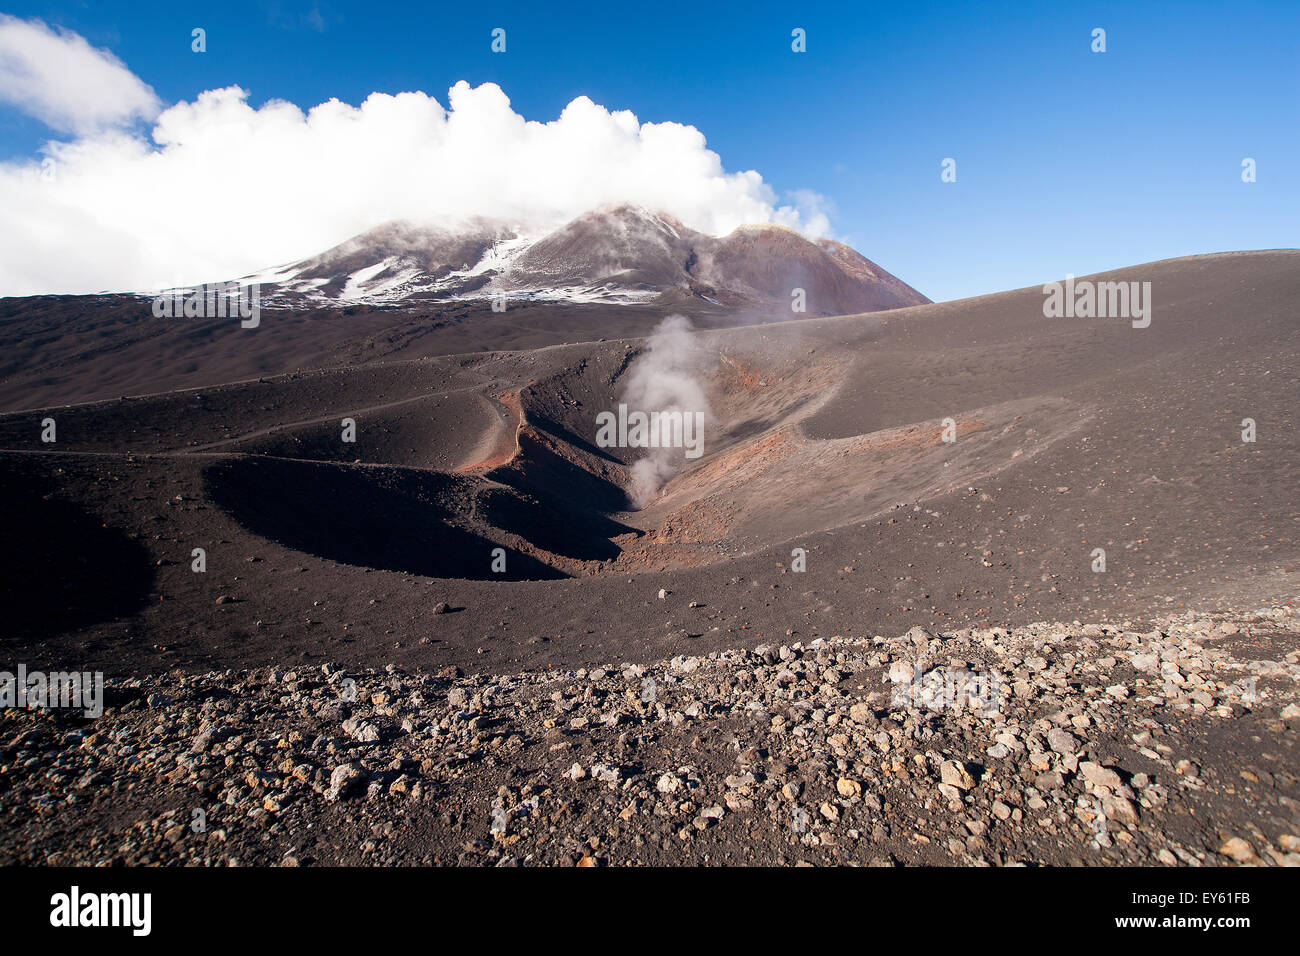 Volcano smoking crater on side of Mount Etna Sicily Italy in black lava field. Stock Photo